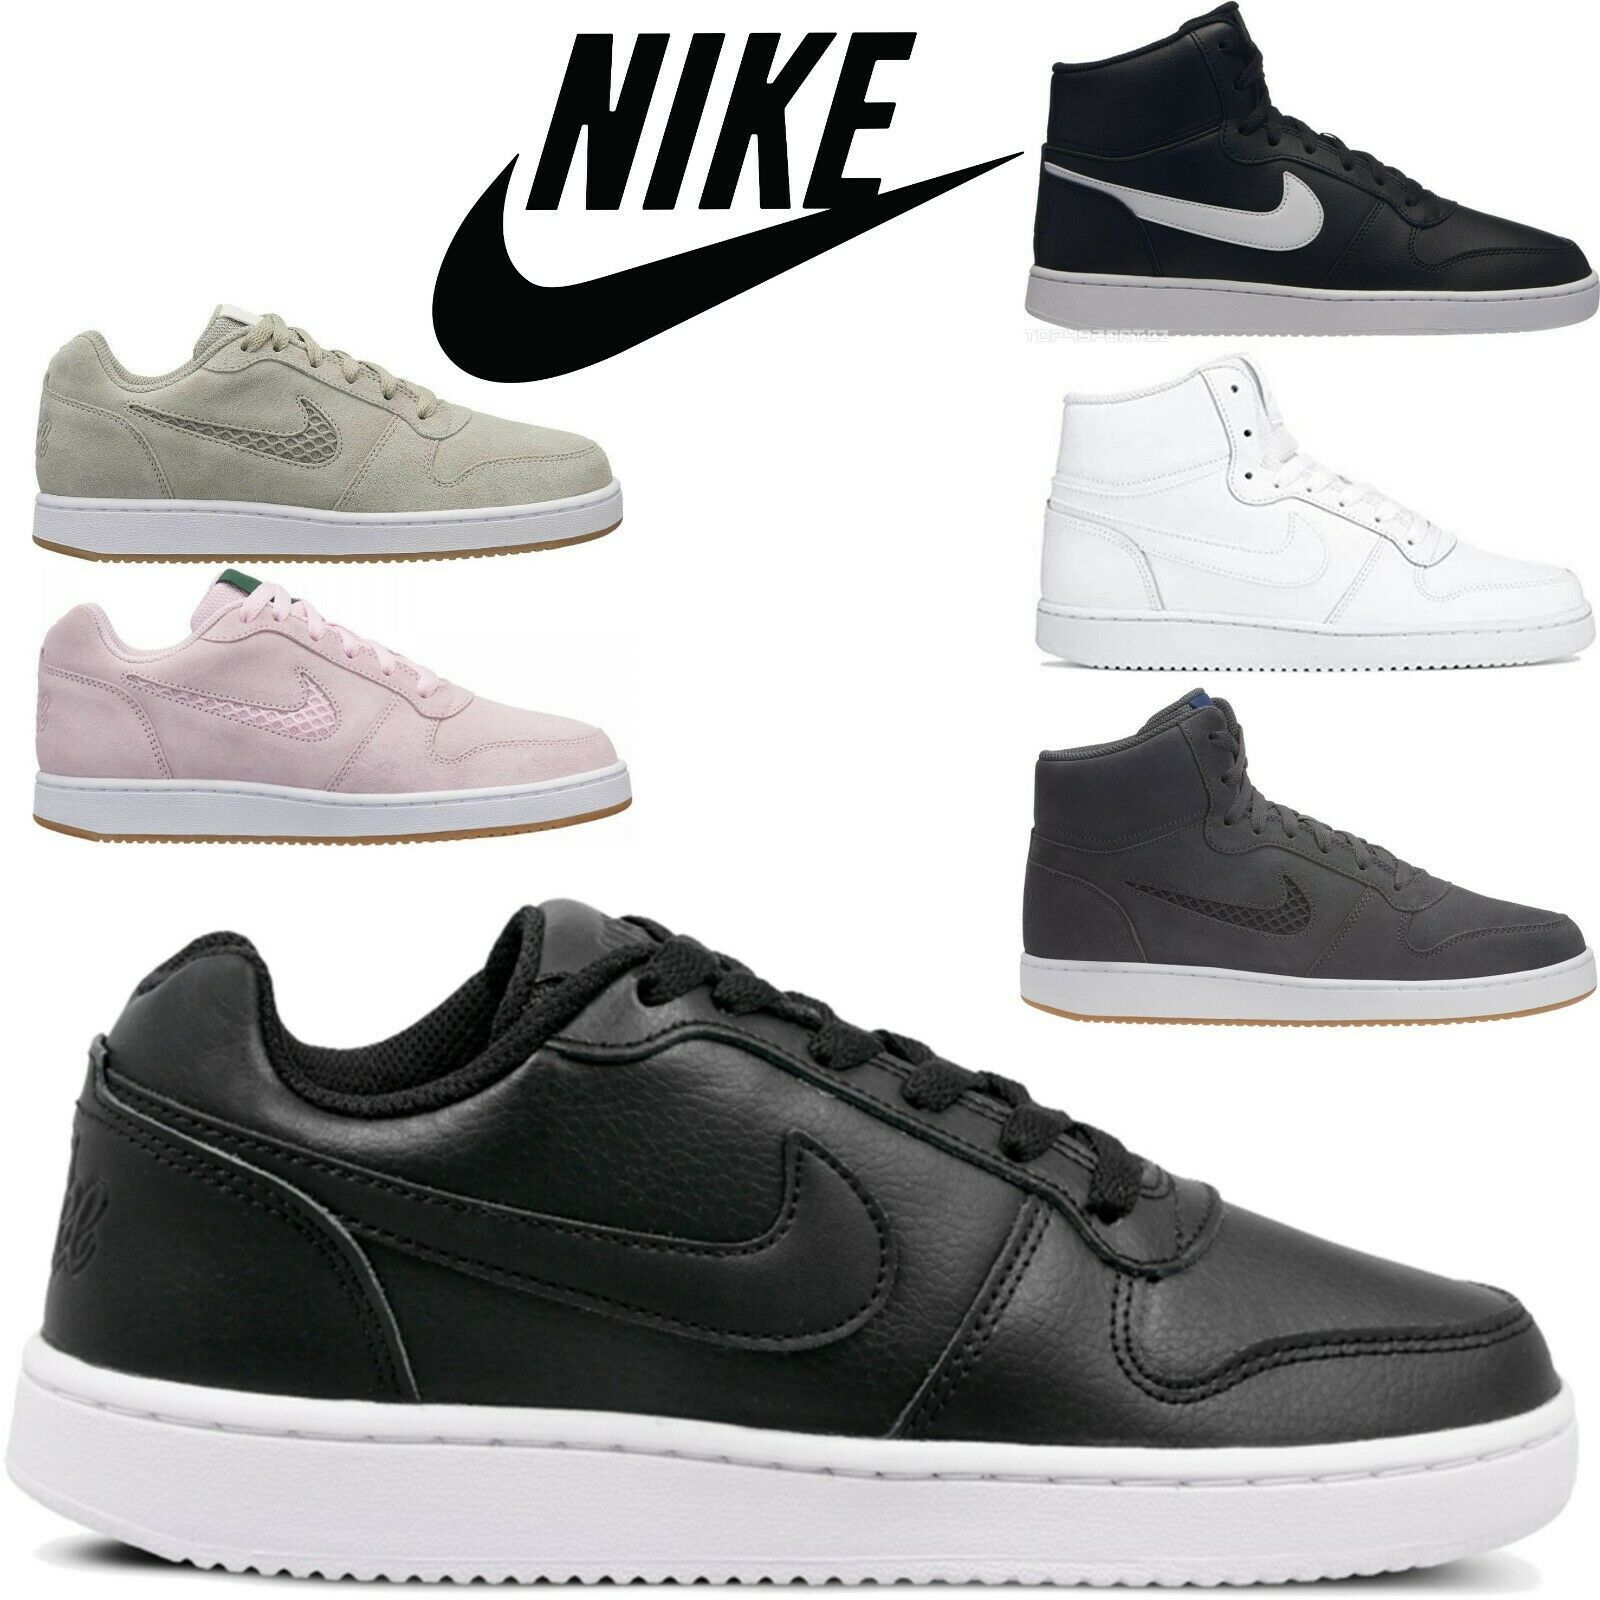 Nike Ebernon MID / LO Sports Shoes Sneakers Trainers - All Colors And Sizes